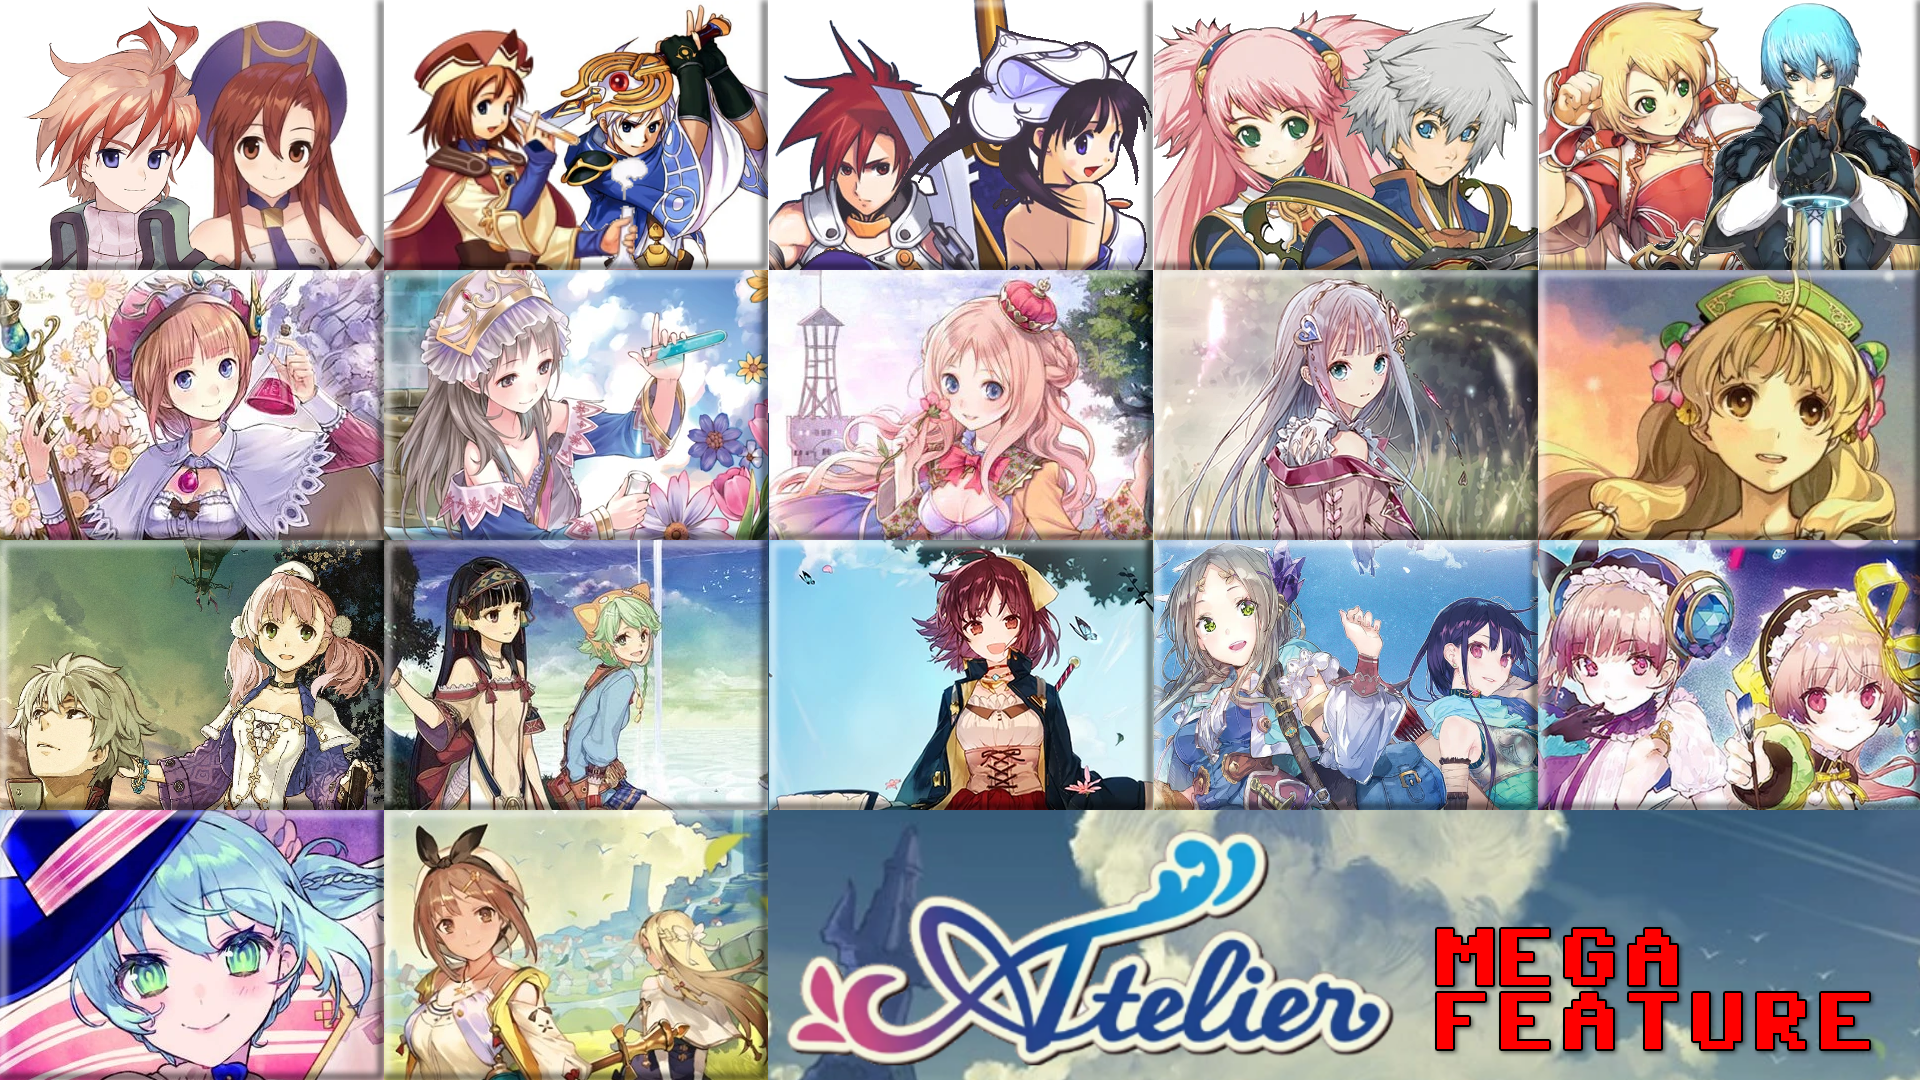 The Atelier MegaFeature